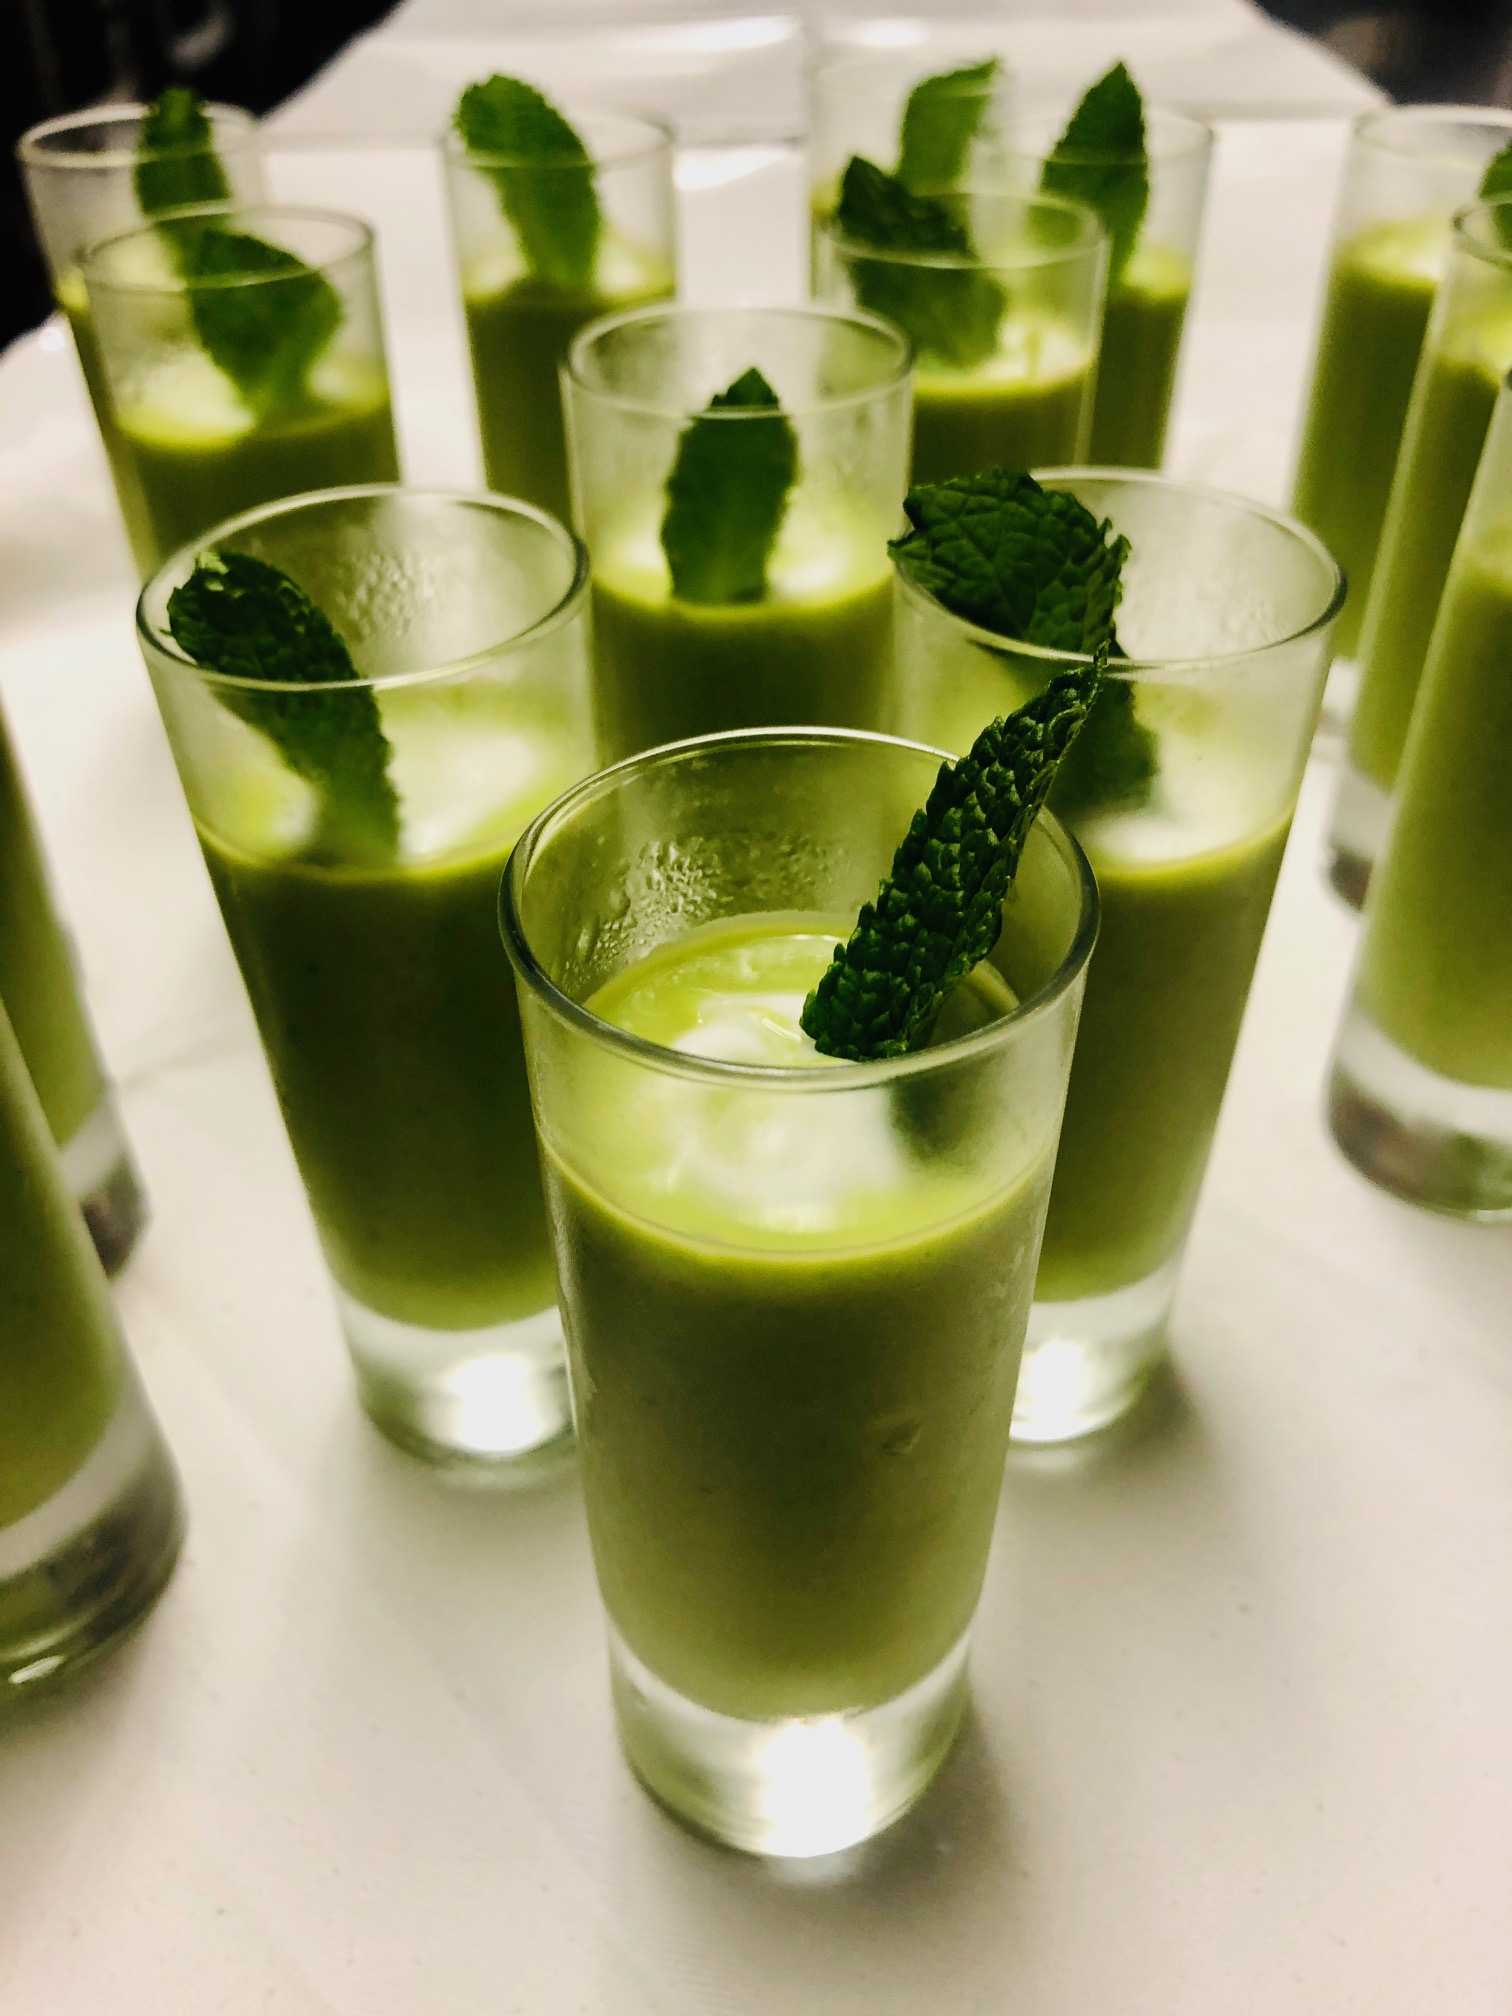 Amuse: Chilled Pea Soup with Lemon Cream